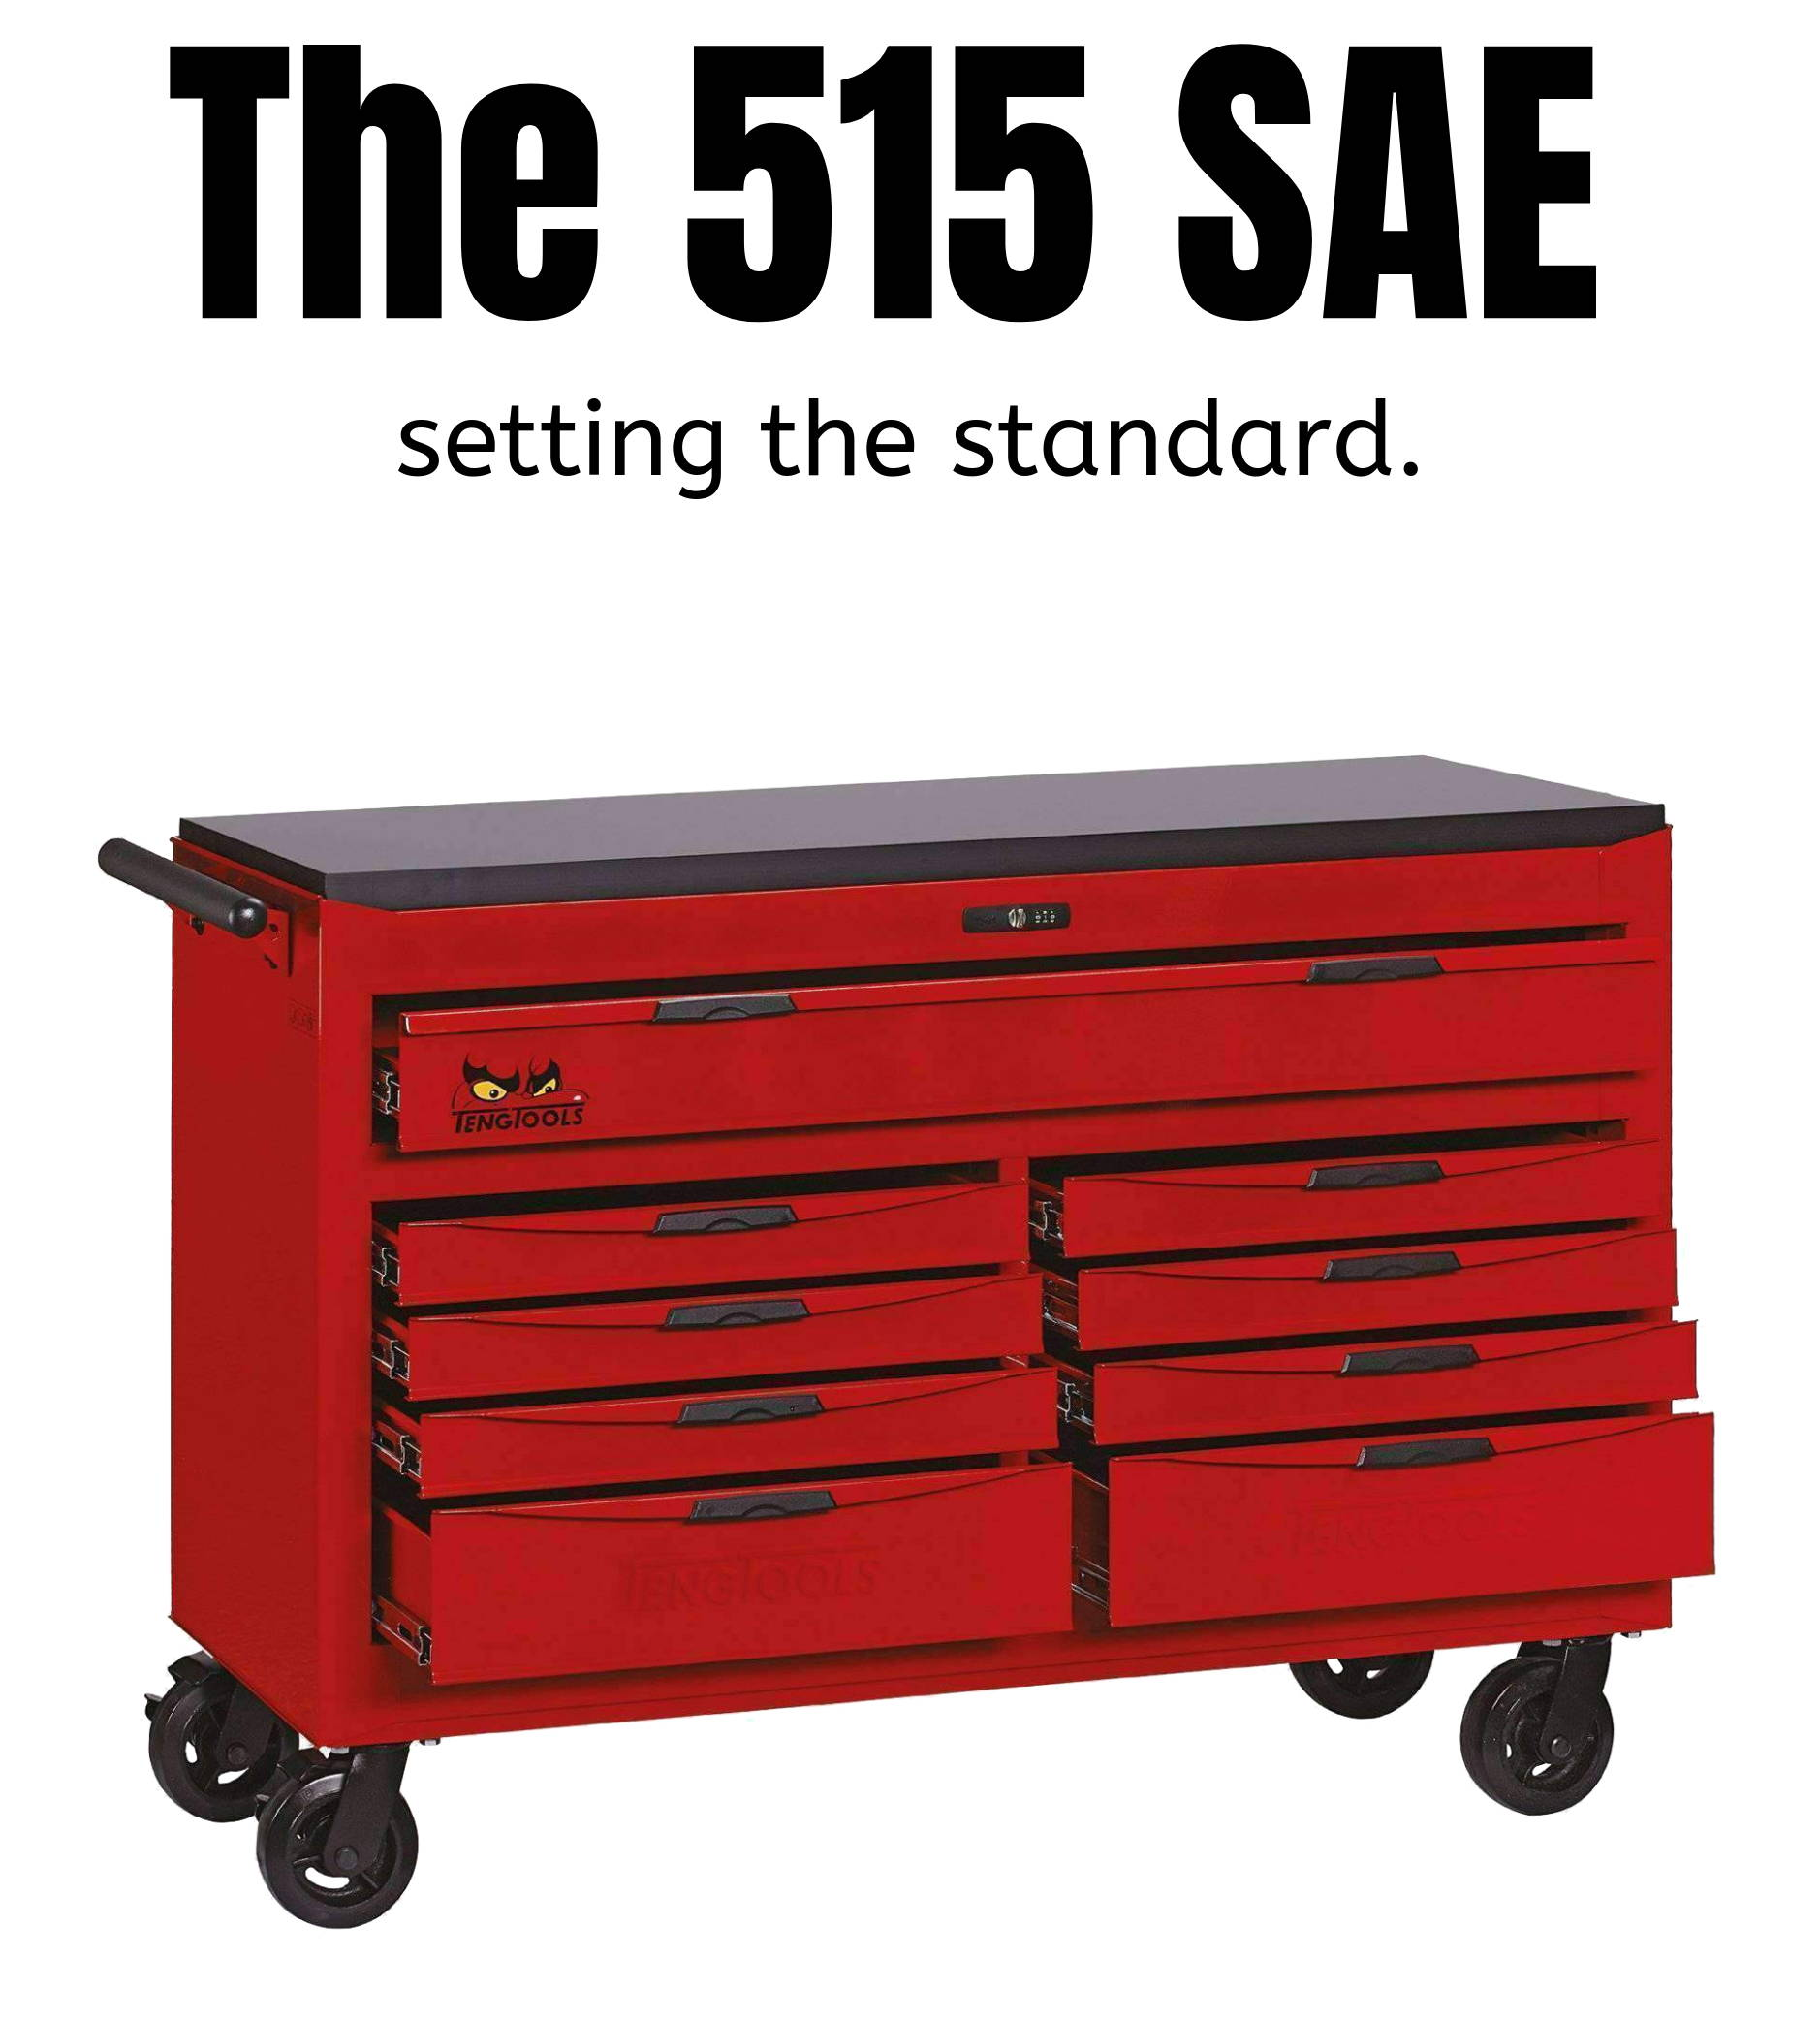 The 515 SAE. Setting the standard.